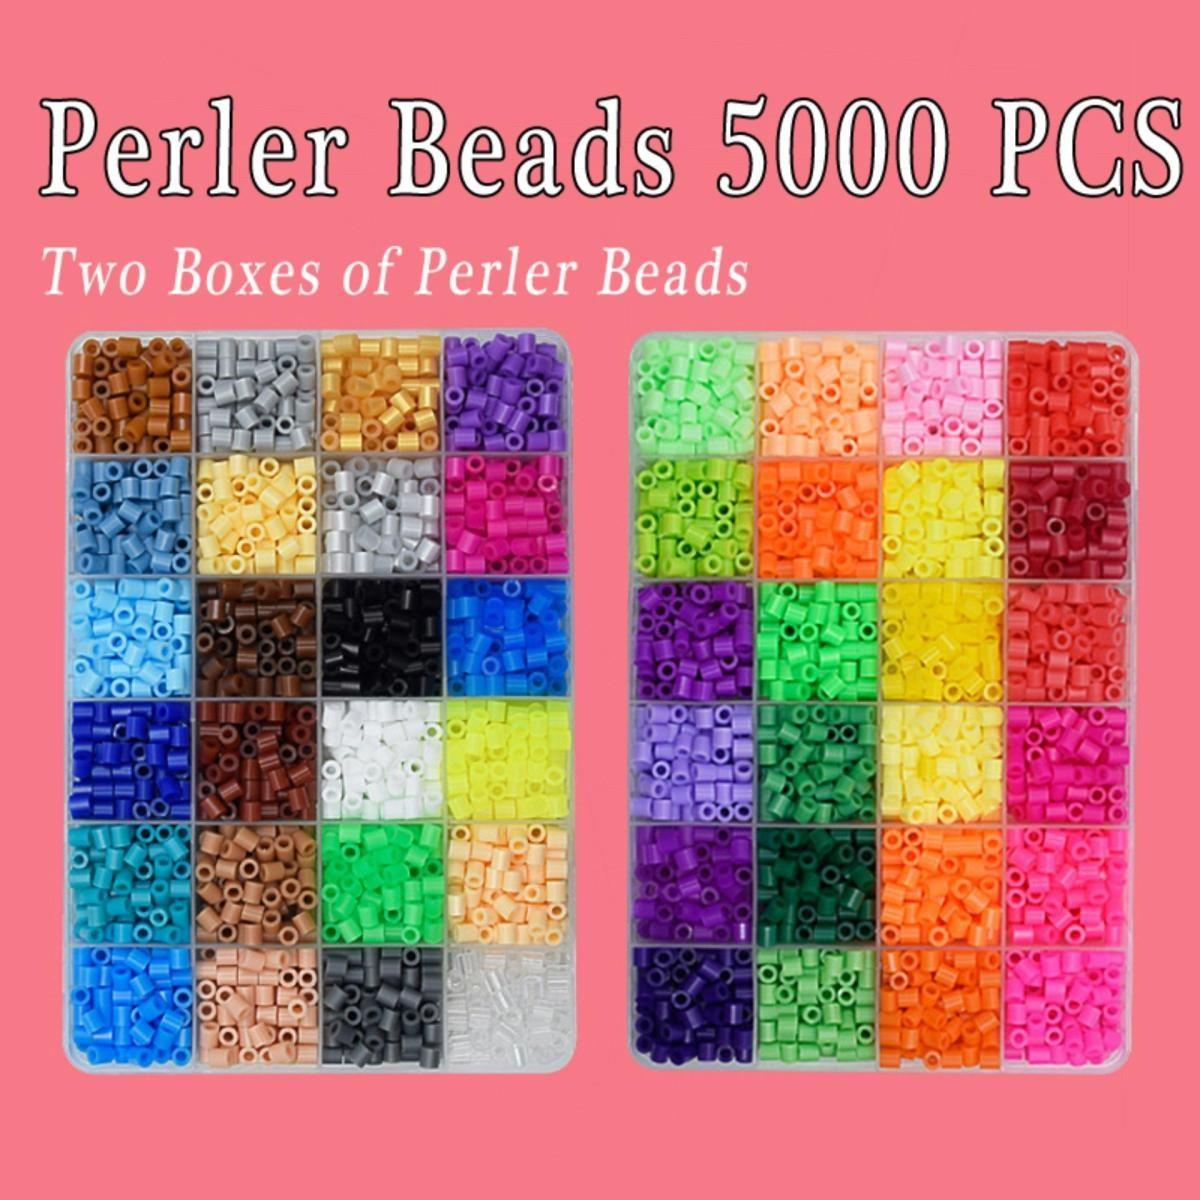 Perler Beads Fused Bead Kit 5000 Piece Beads Craft Beads For Kids By Tcgbhvkog.